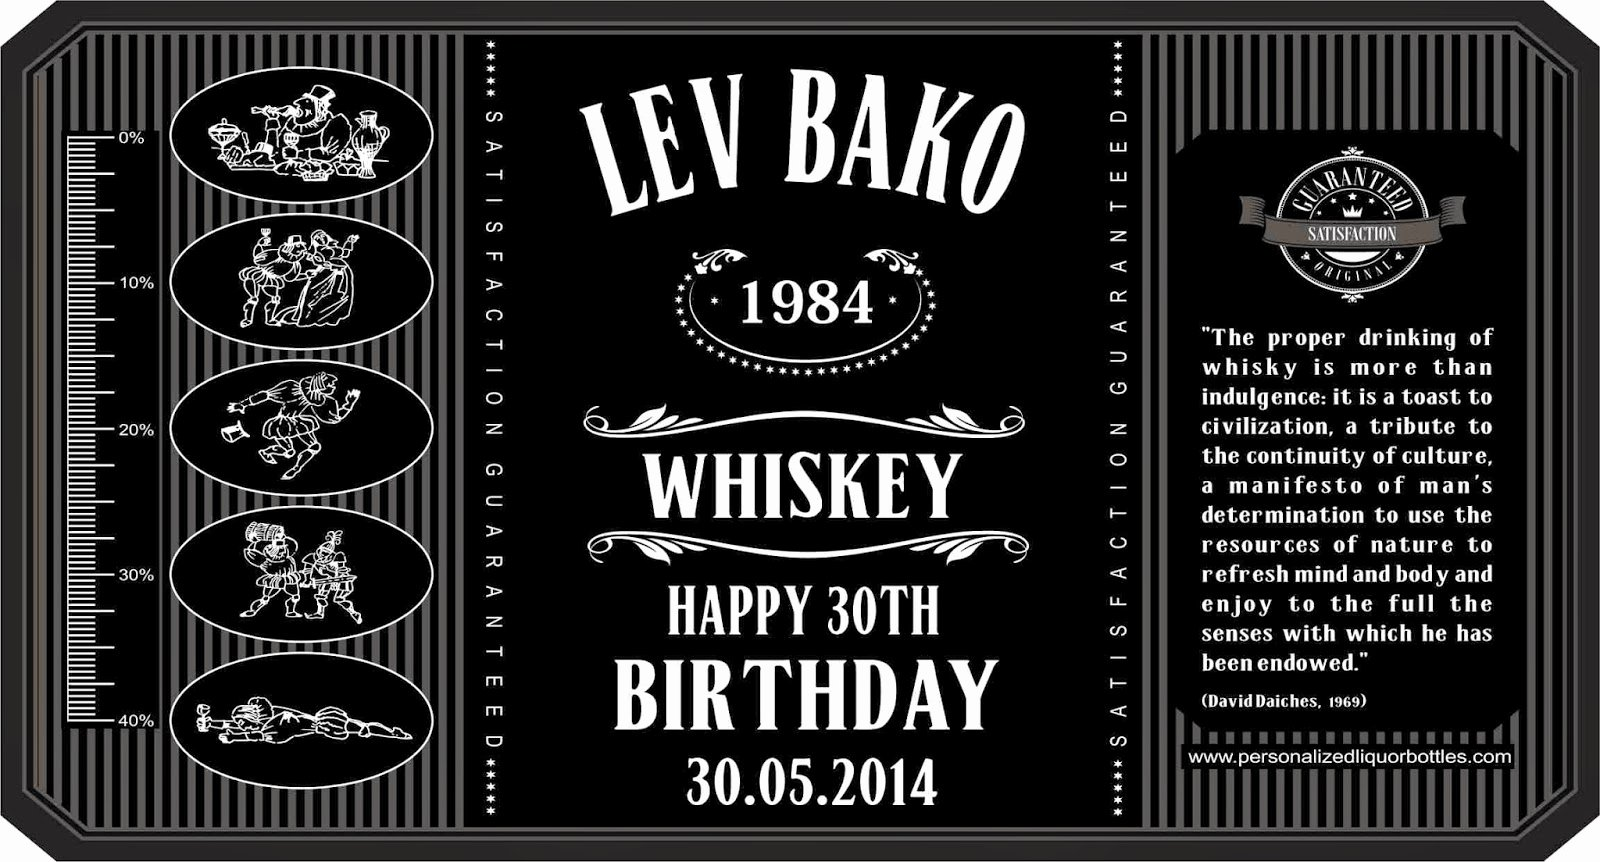 Free Jack Daniels Label Template Best Of Personalized Liquor Bottles Personalized Whiskey Bottles